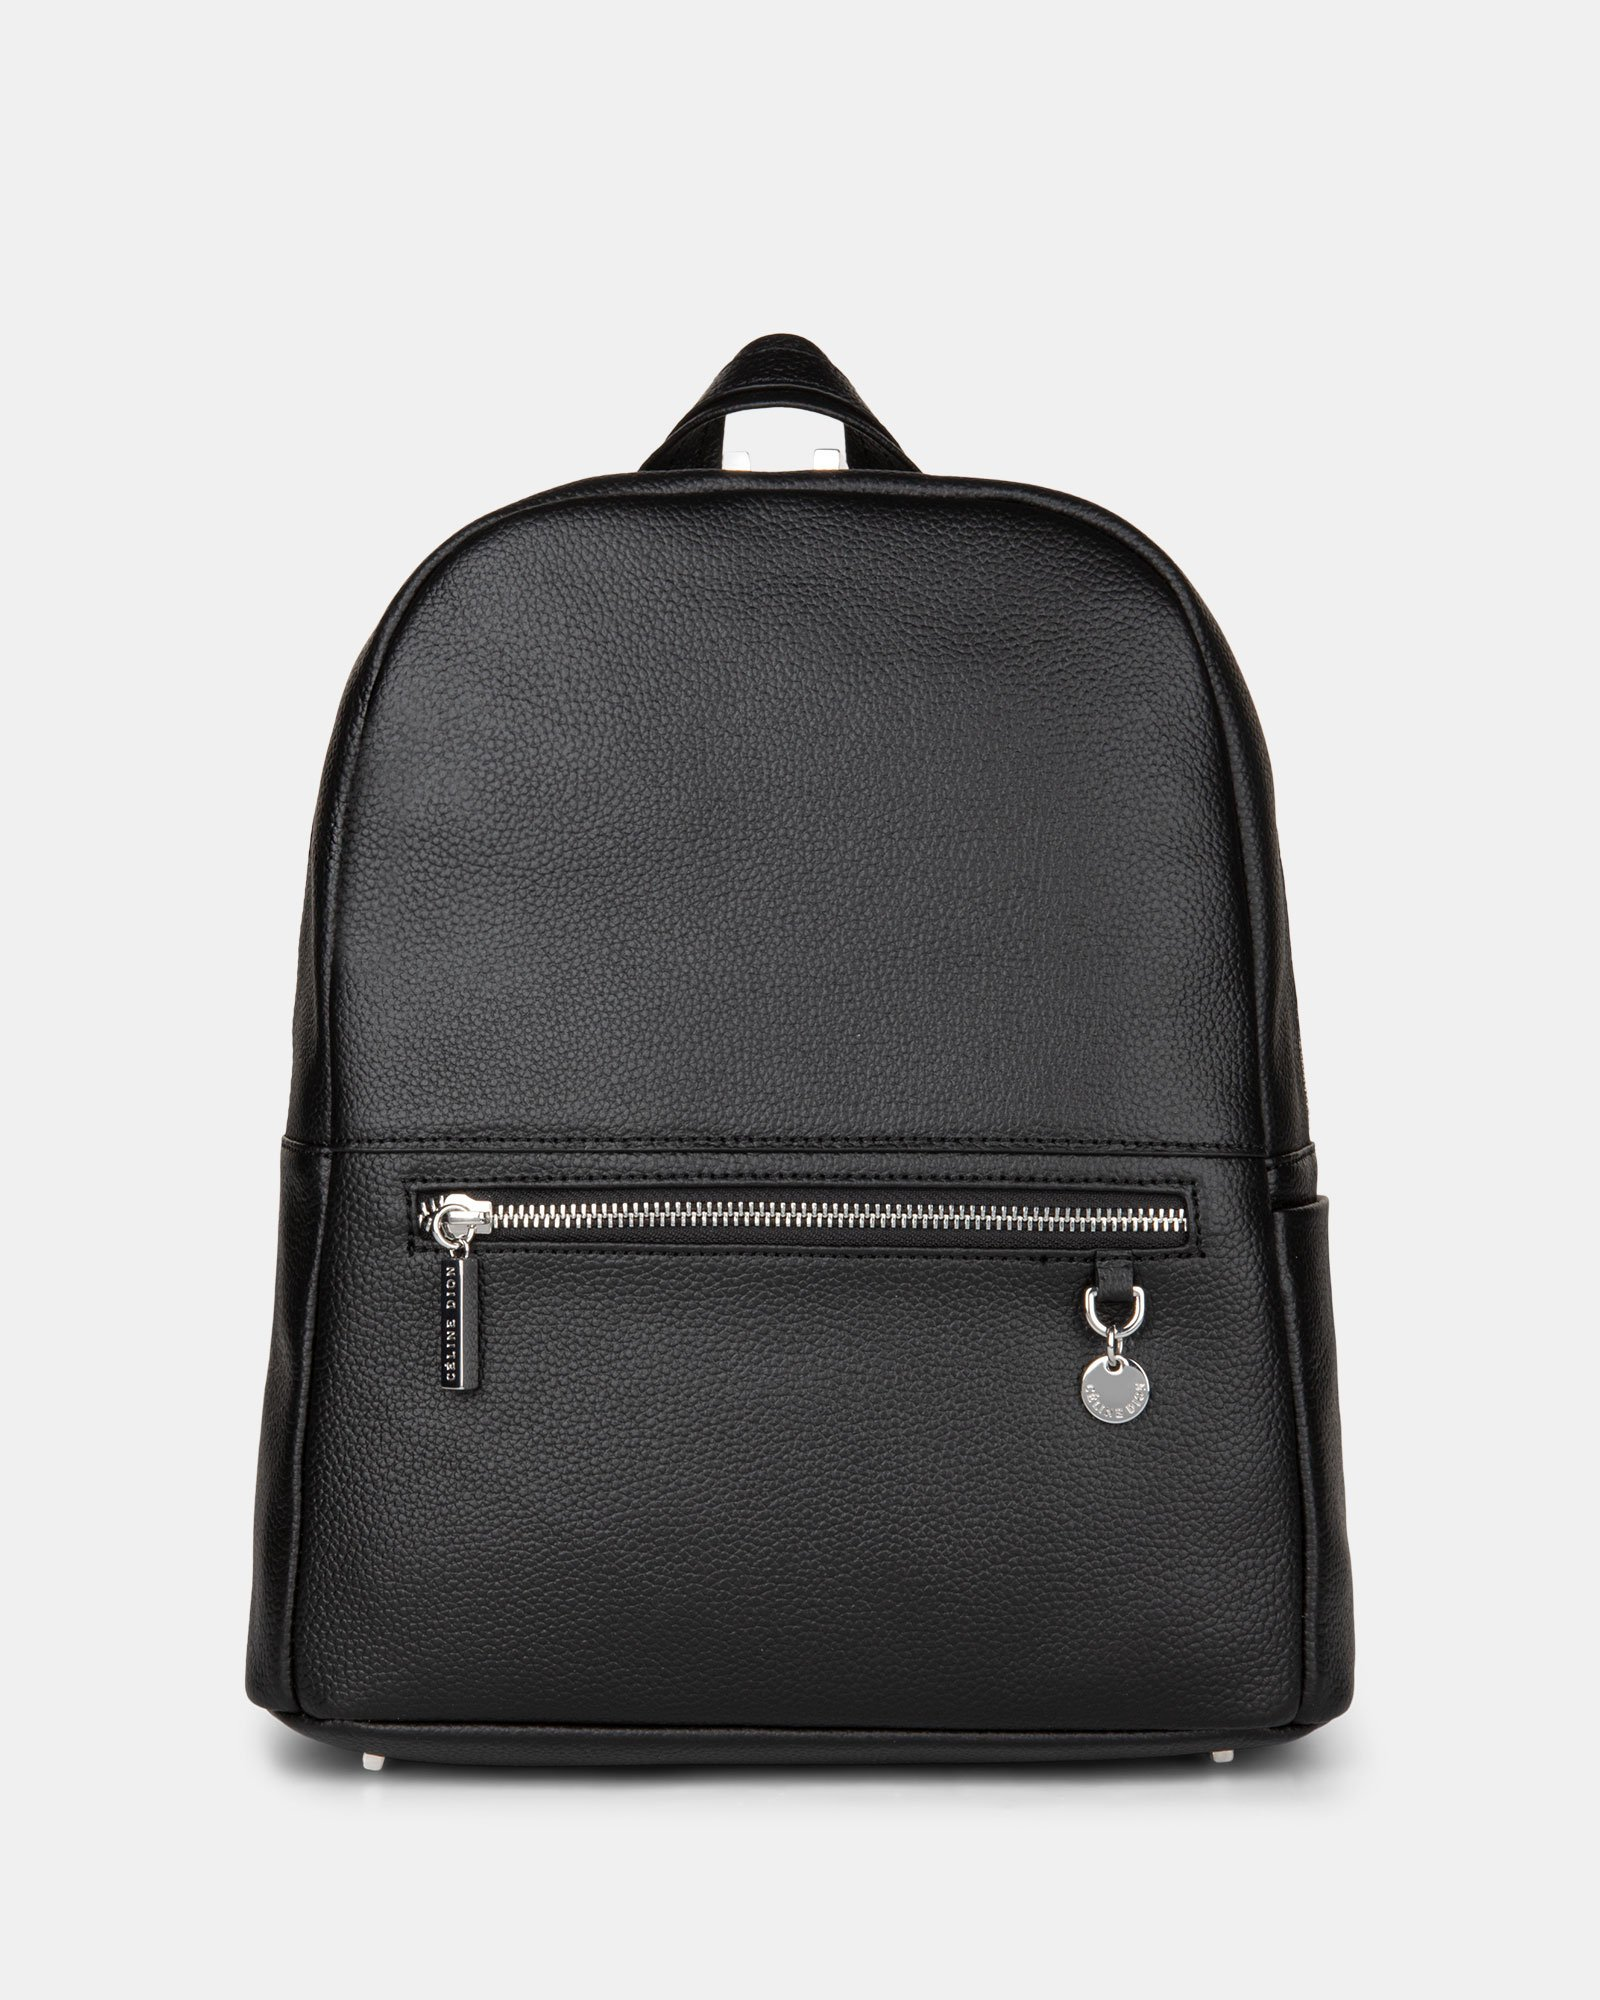 FALSETTO - LEATHER BACKPACK with RFID protection - BLACK - Céline Dion - Zoom